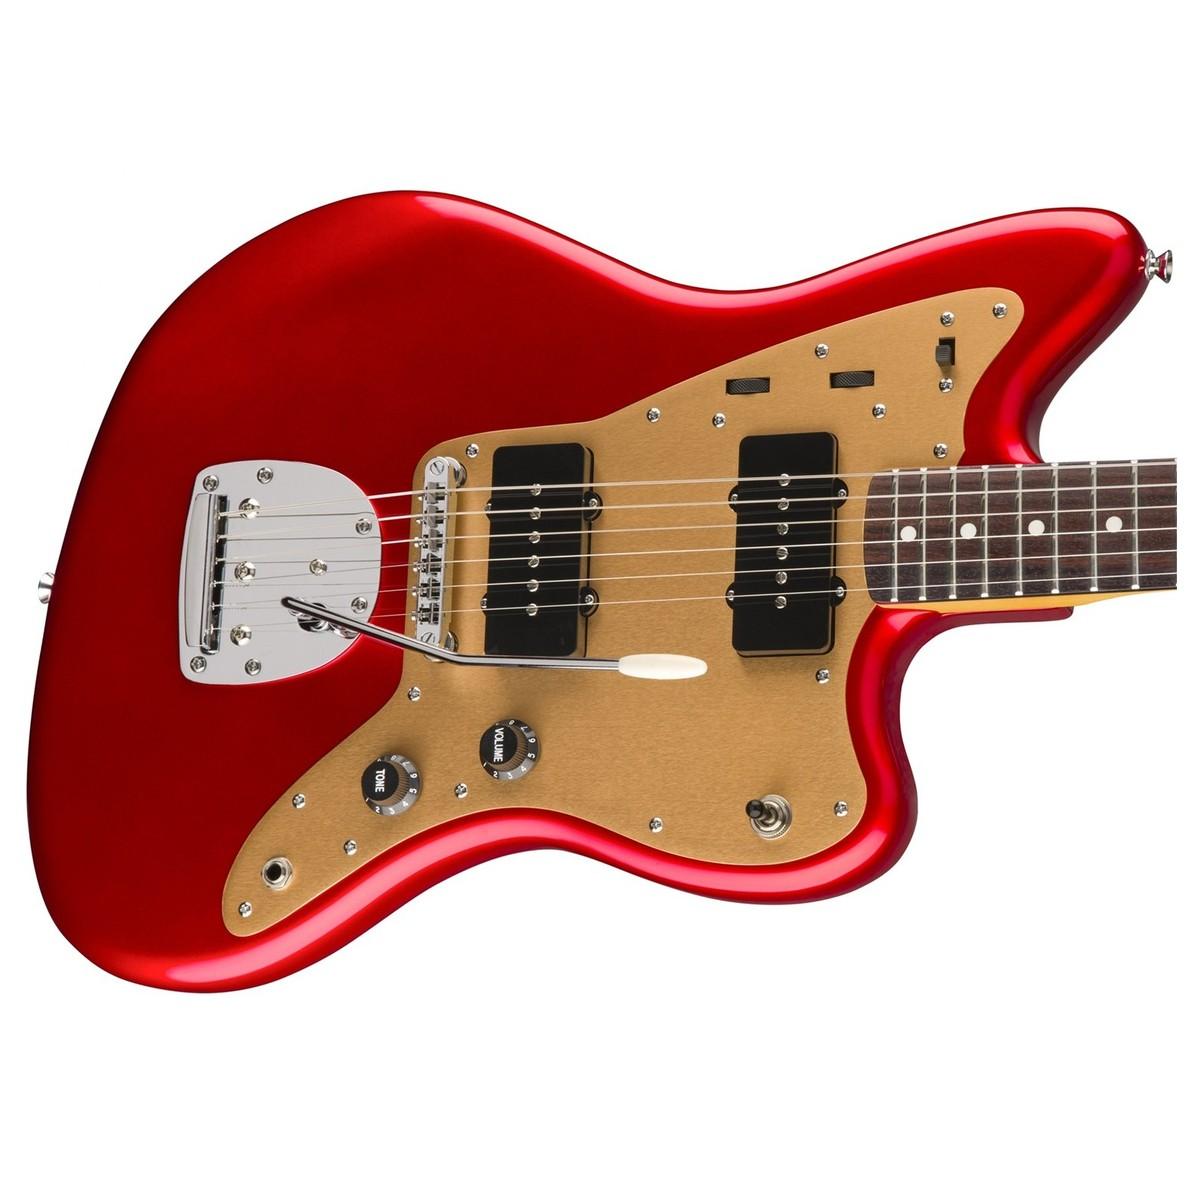 Squier Deluxe Jazzmaster With Tremolo Candy Apple Red At Gear4music Circuit Bend Anything Fx Kit Add Bent Theremin Effects To Guitar Bass Loading Zoom